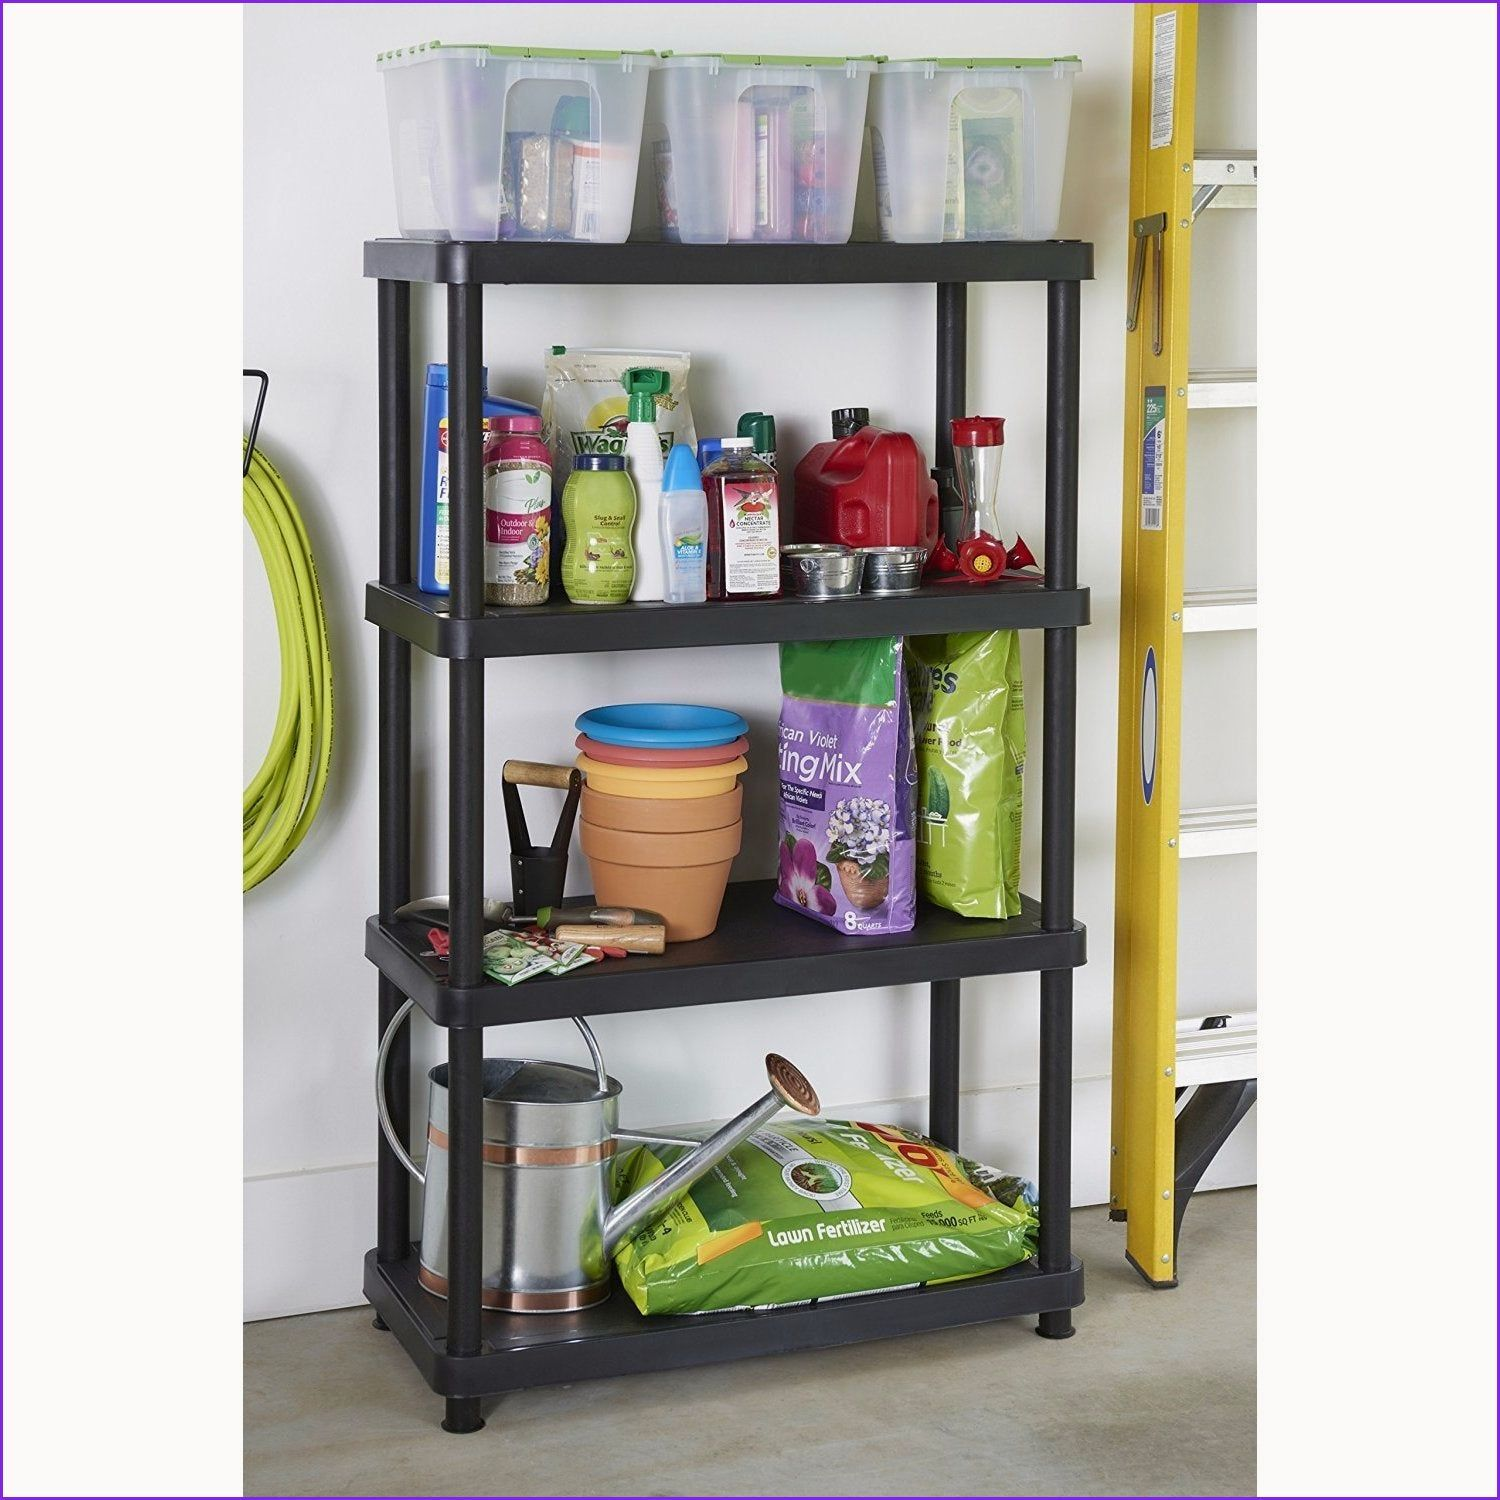 Awesome How to Build Free Standing Garage Shelves in 2020 ...